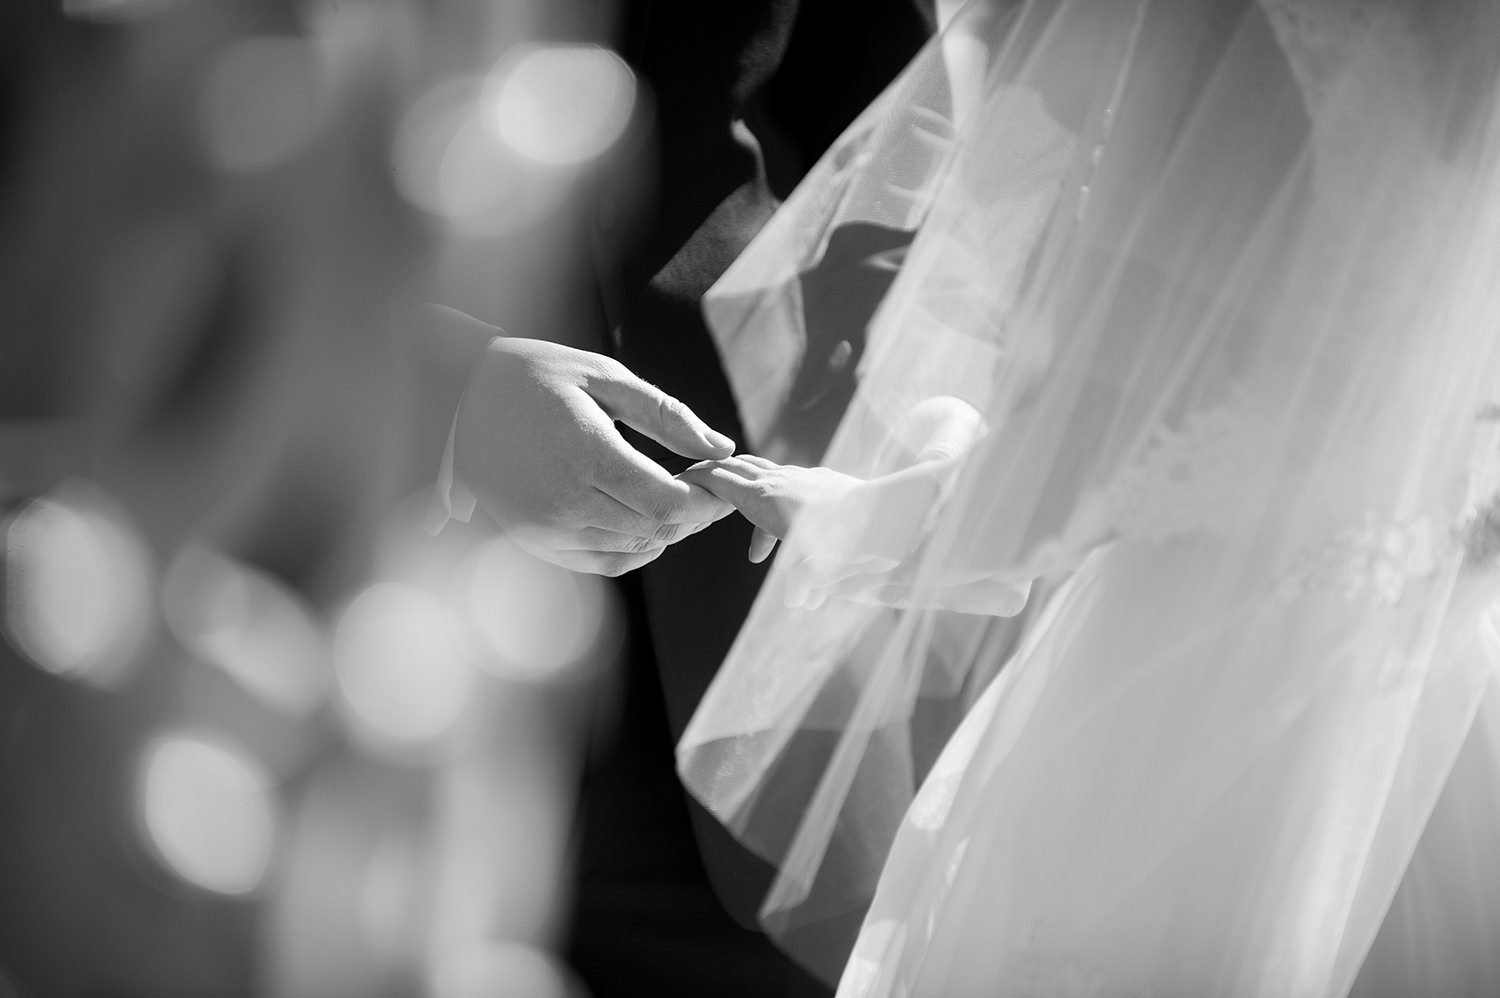 groom putting on brides wedding ring